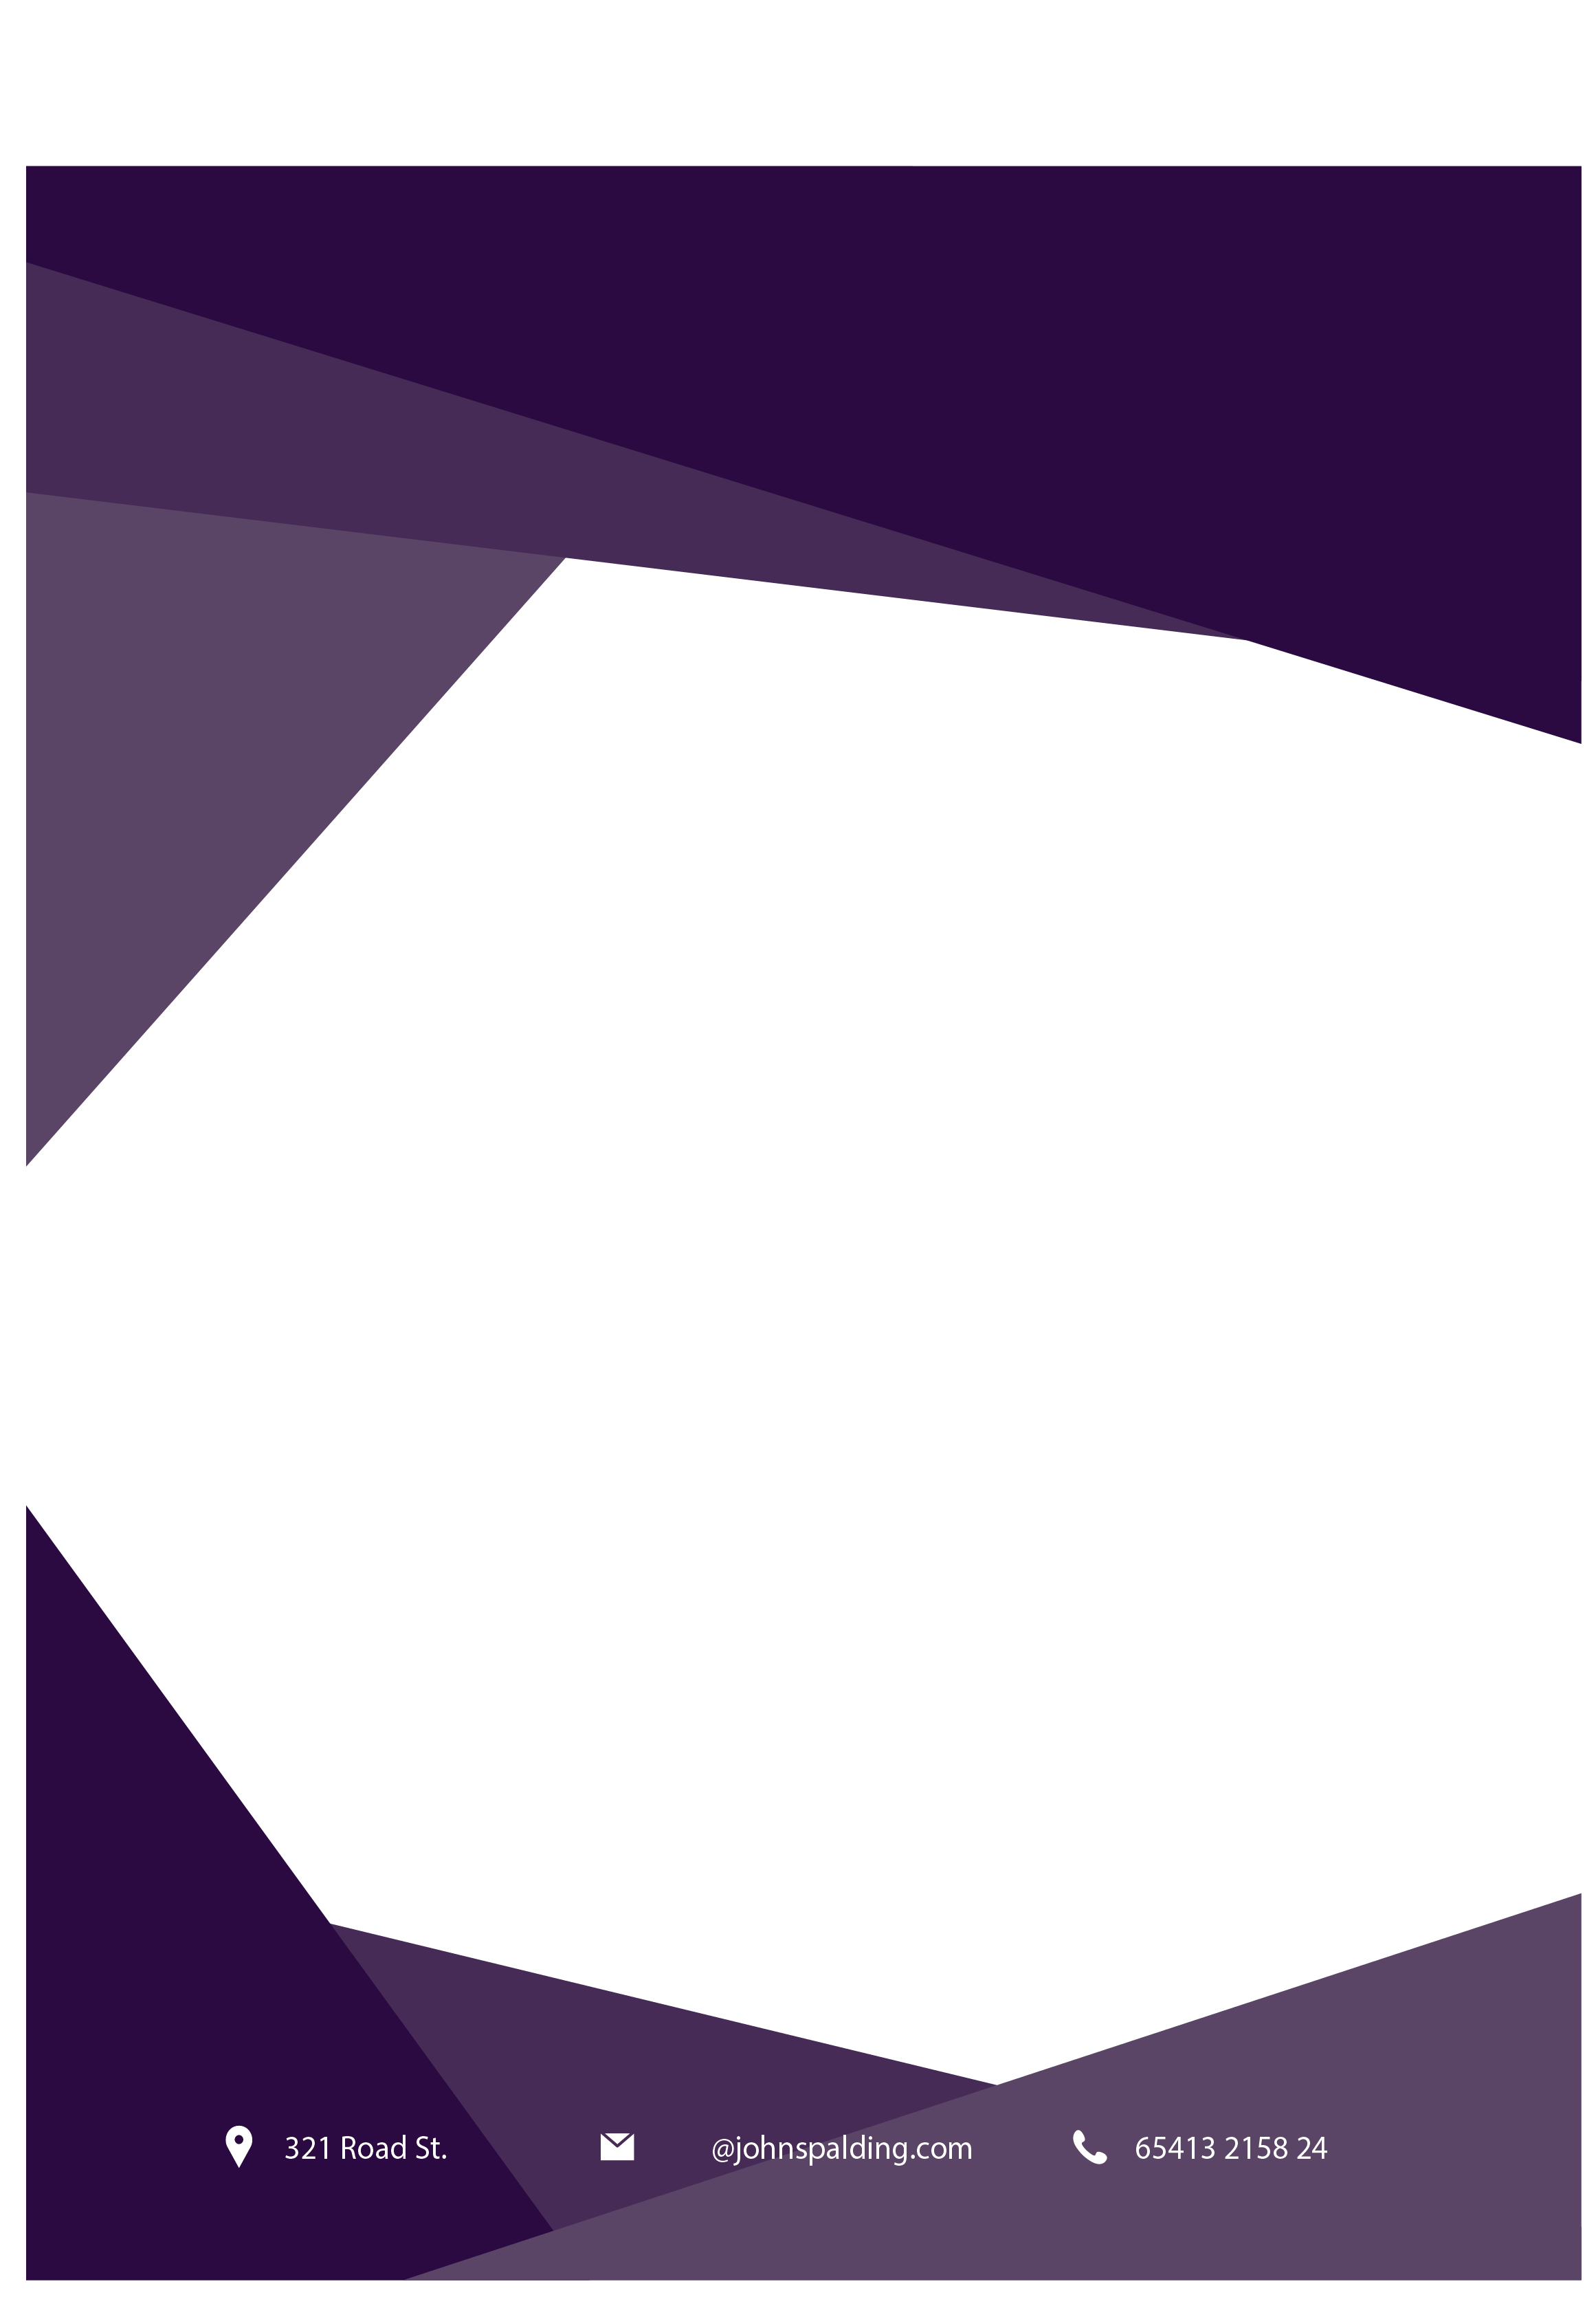 Purple Paper Border Business Flyer Free Clipart HD PNG Image